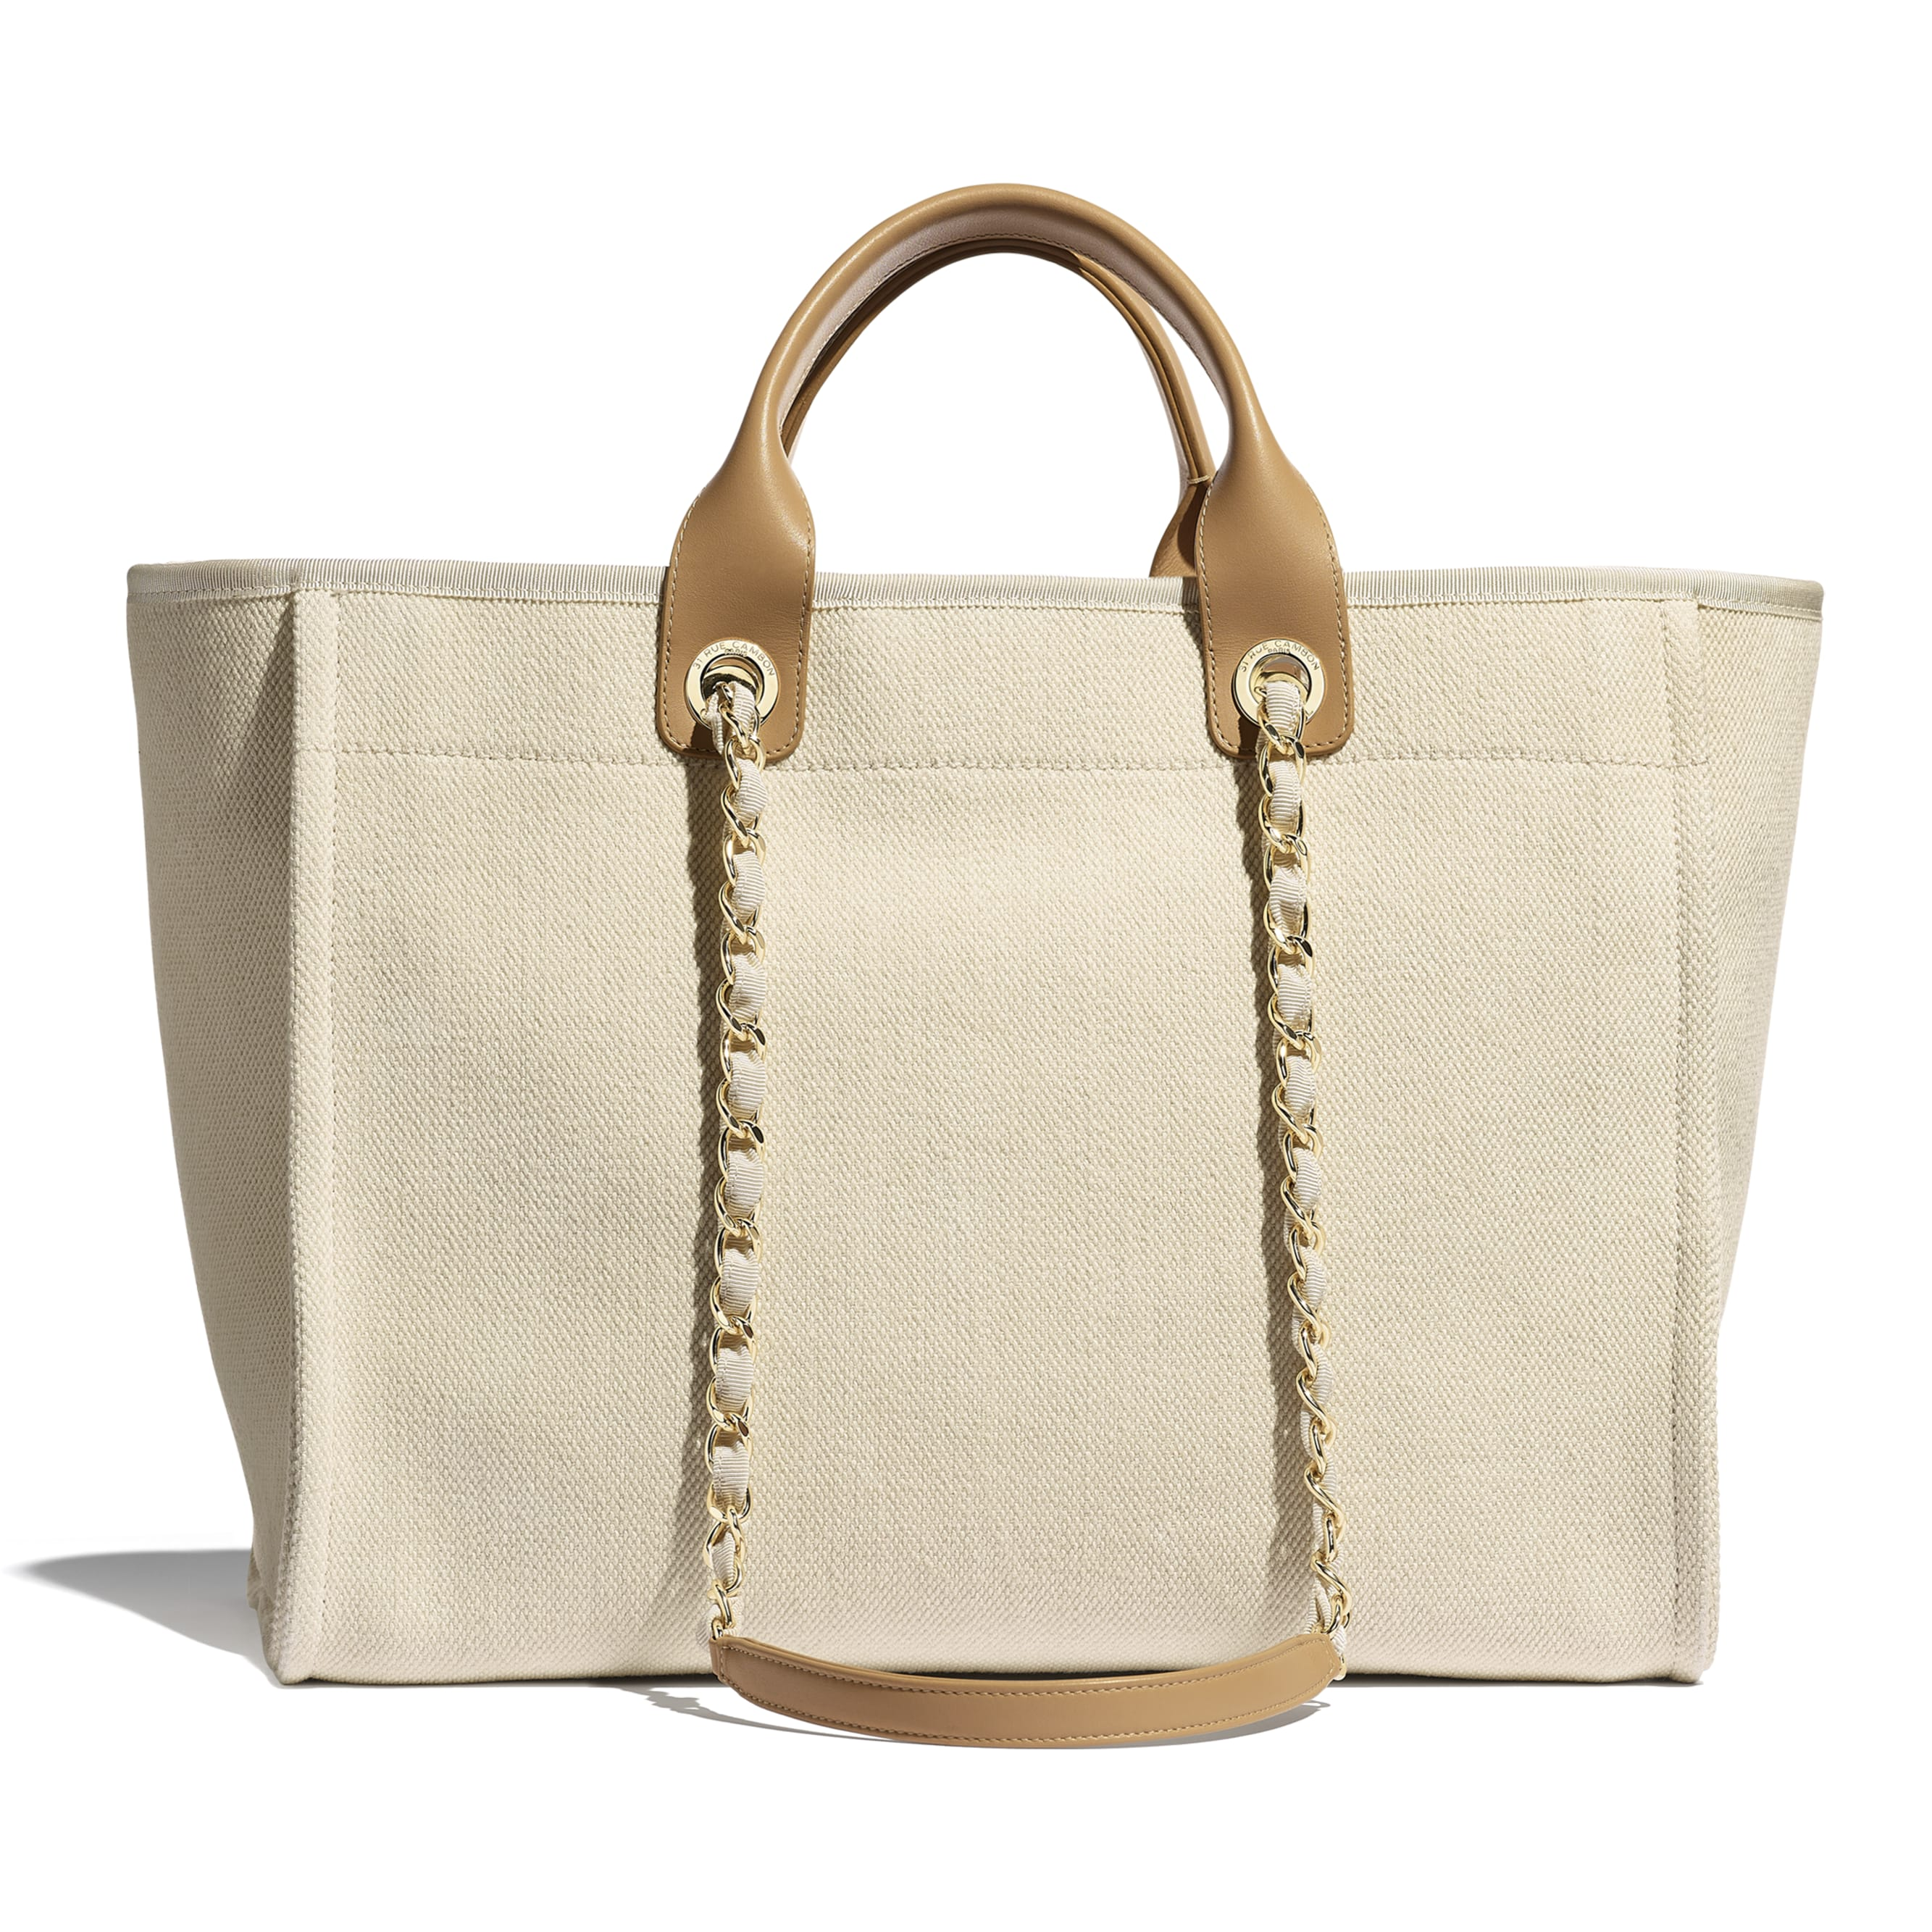 Shopping Bag - Ecru & Beige - Mixed Fibers, Imitation Pearls & Gold-Tone Metal - Alternative view - see standard sized version